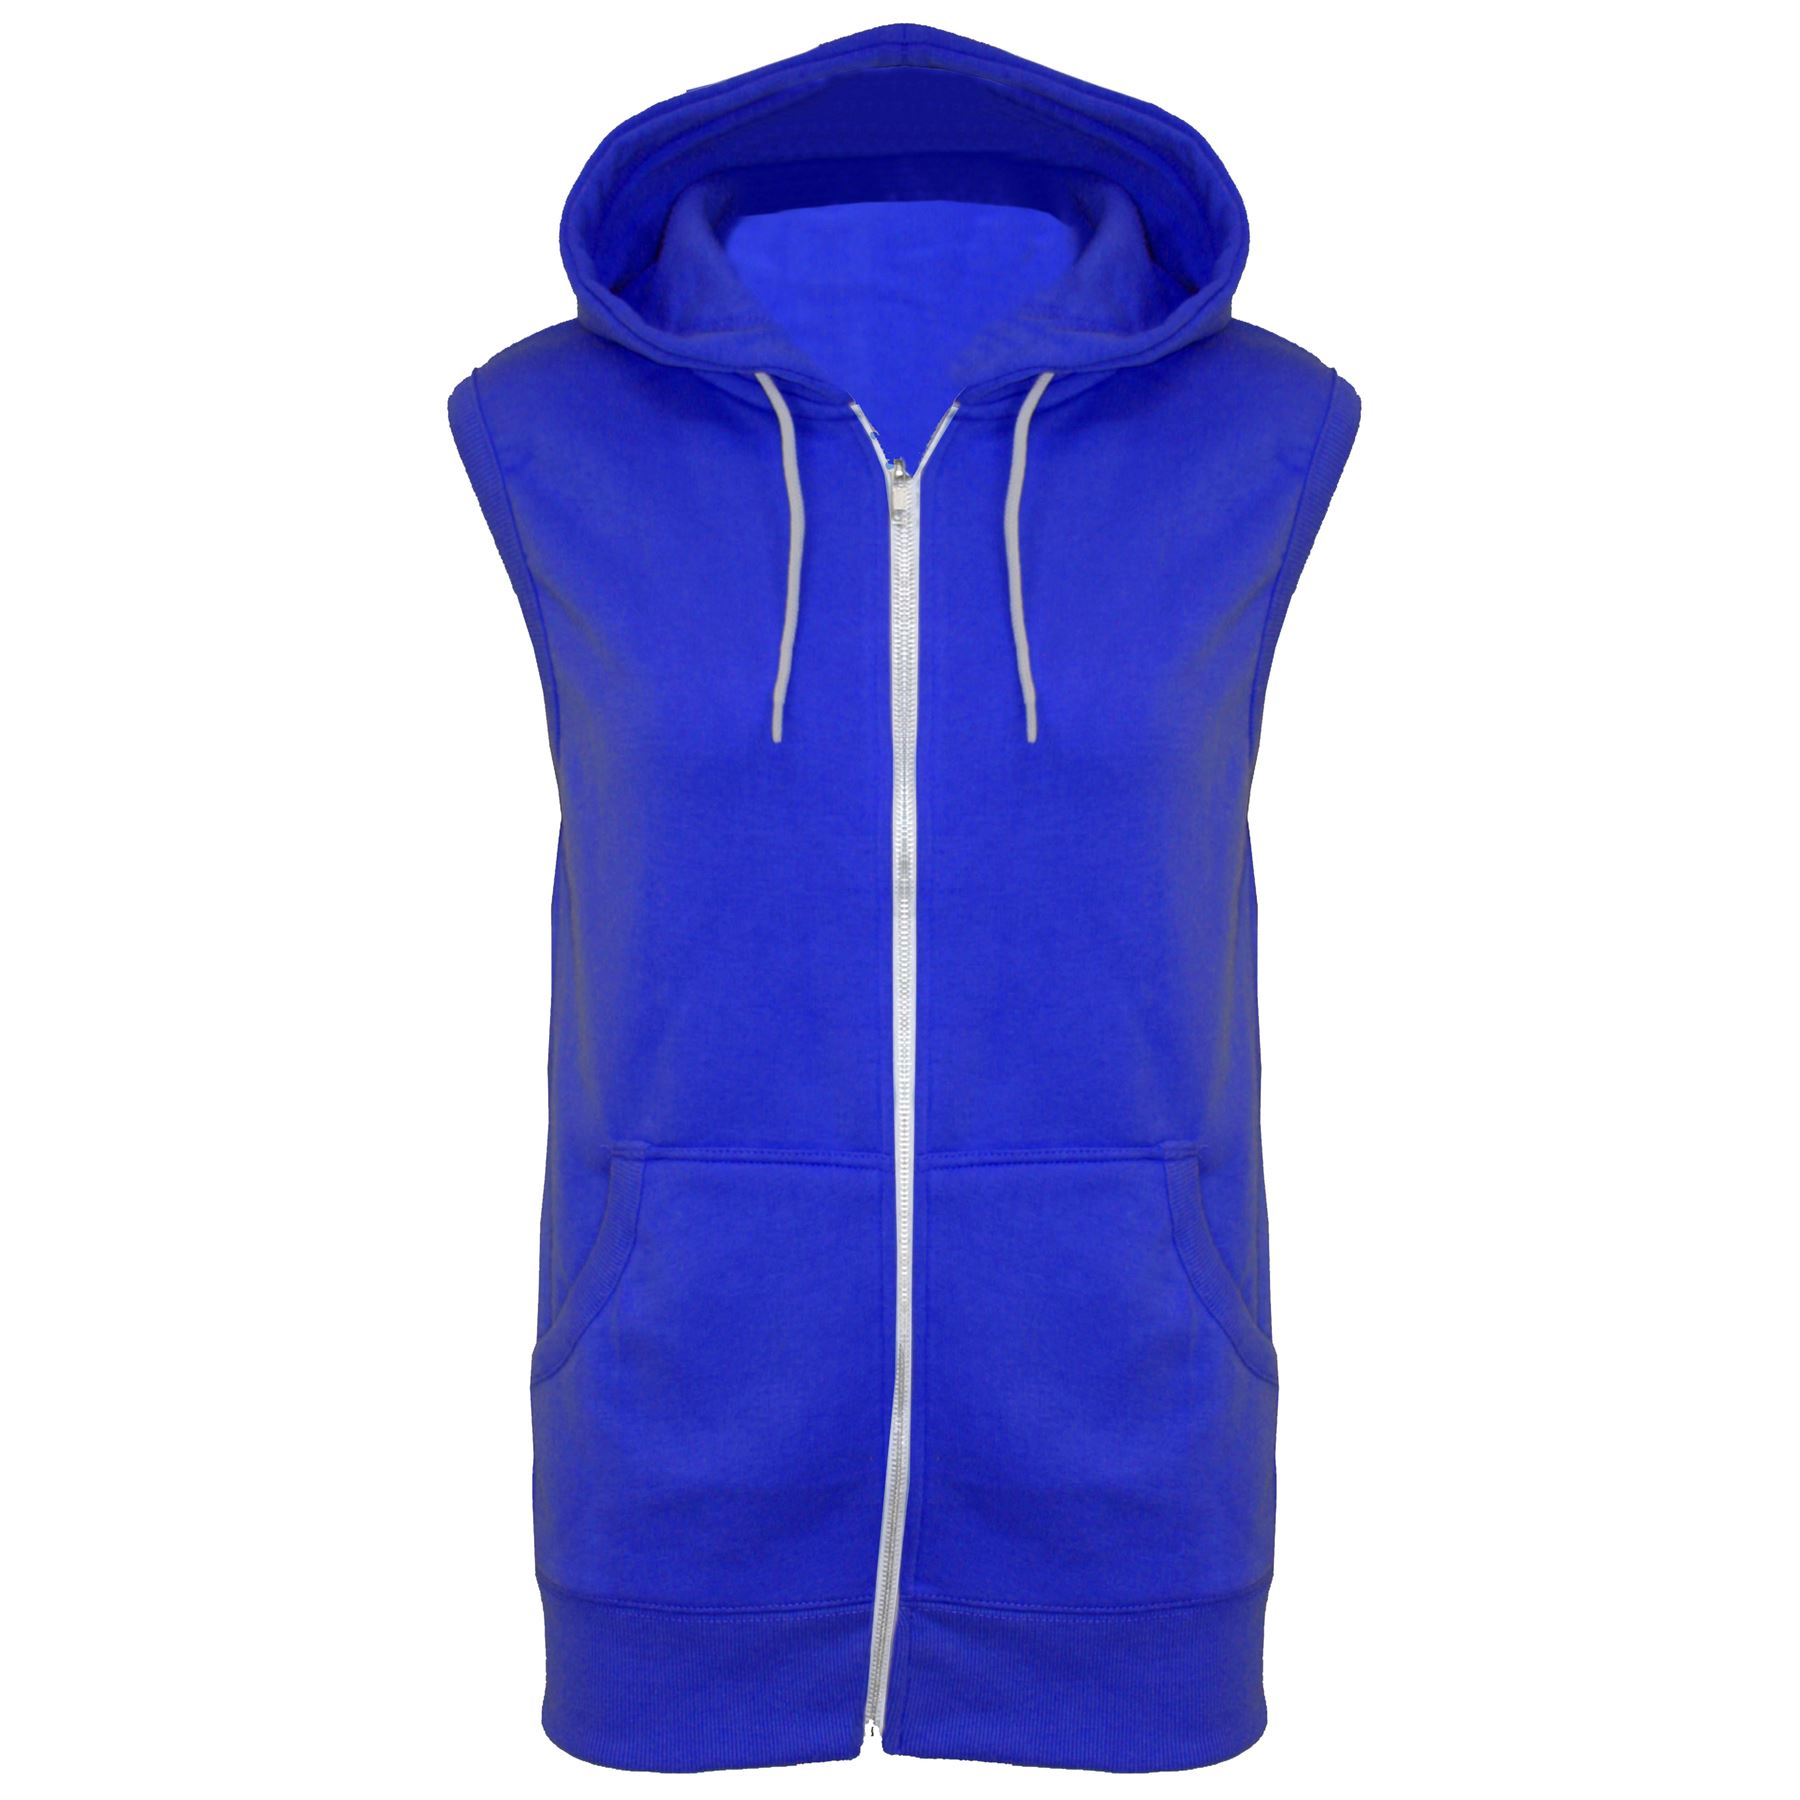 Mens-Sleeveless-Hooded-Zipper-Hoodie-Casual-Gilet-Sweatshirt-Jacket-Jumper-Top